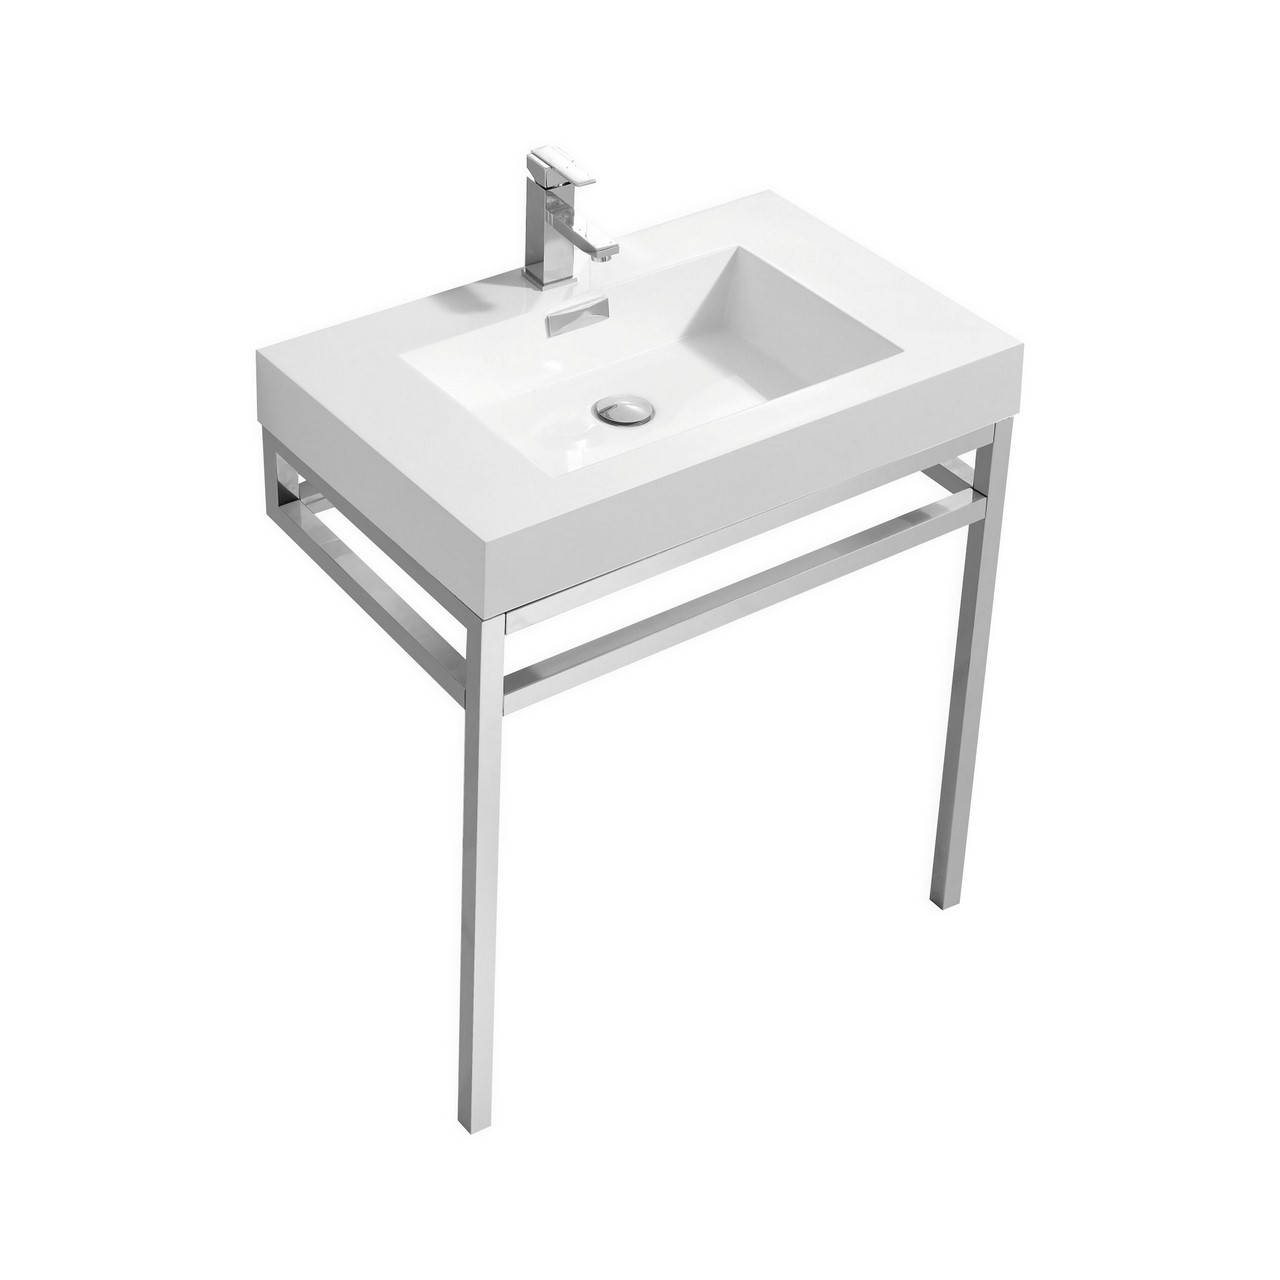 "Modern Lux 30"" Stainless Steel Console w/ White Acrylic Sink - Chrome"